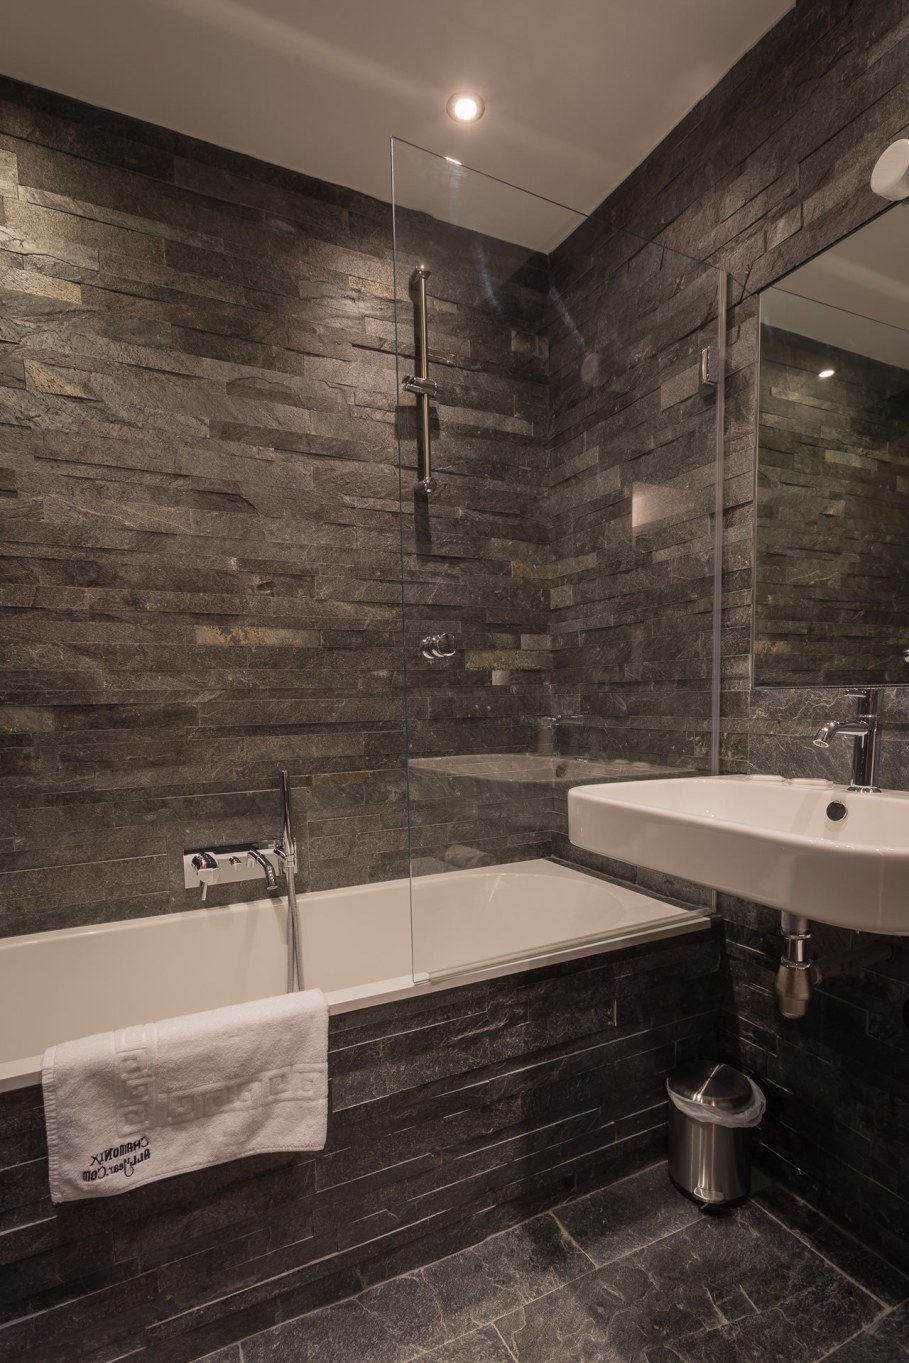 Dag Chalet In France - Bathroom